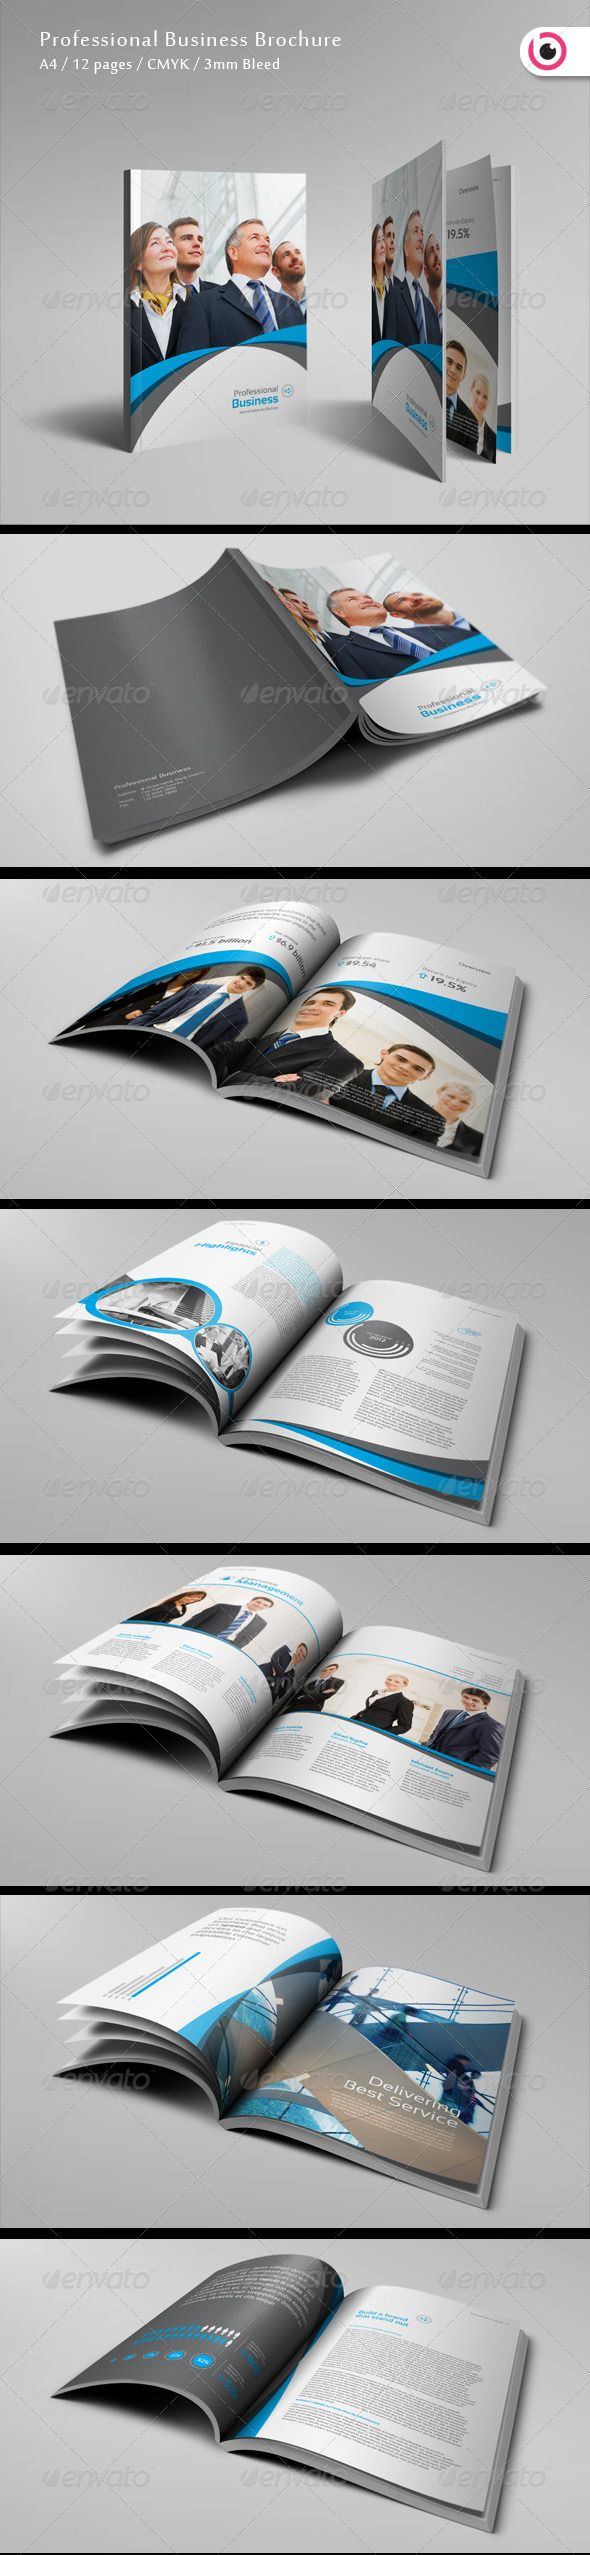 172 best Mockup images on Pinterest | Flyers, Flyer template and ...